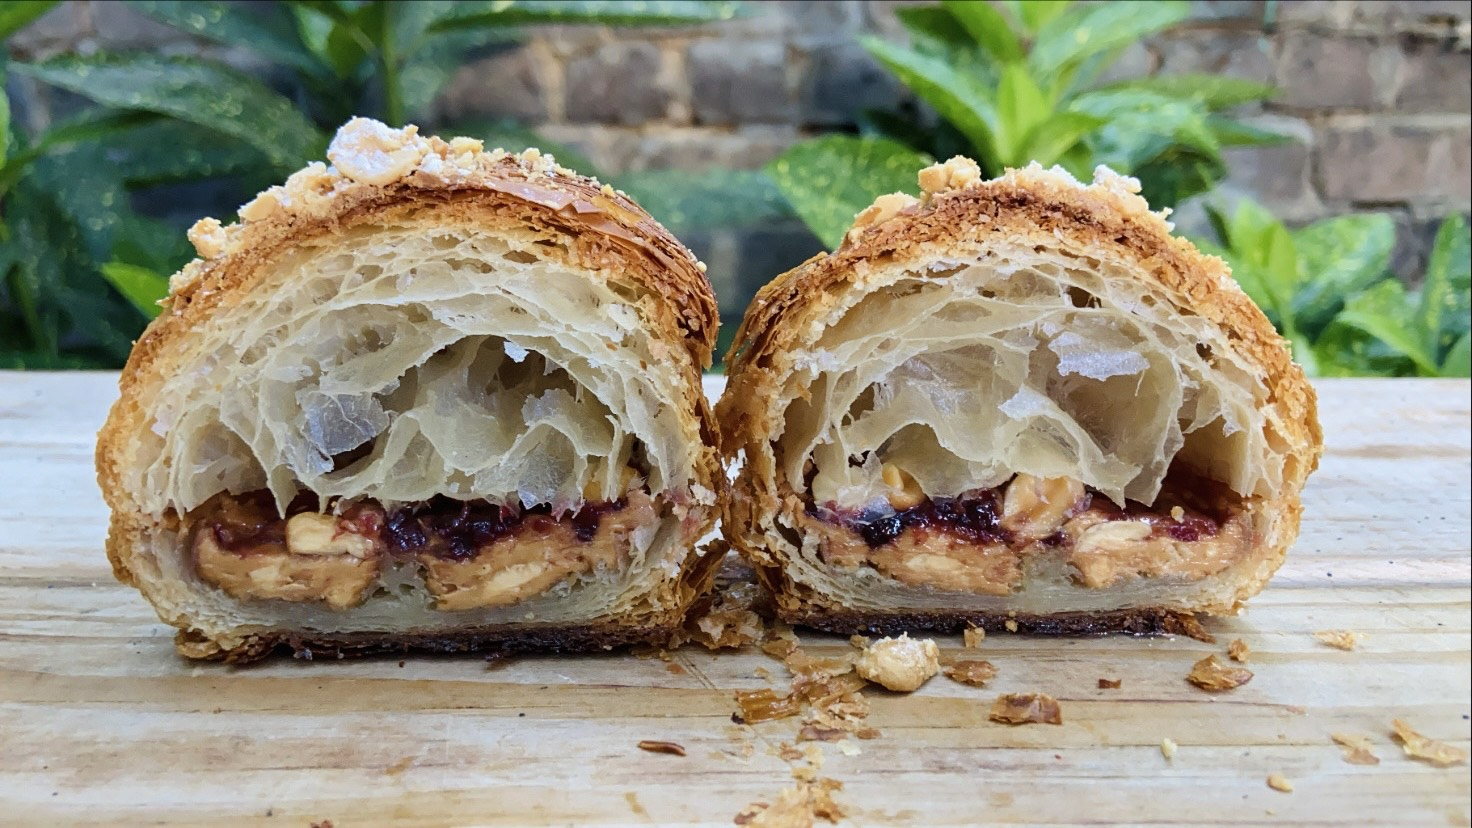 A cross-section of a croissant with peanut butter and raspberry jelly oozing out of the middle.